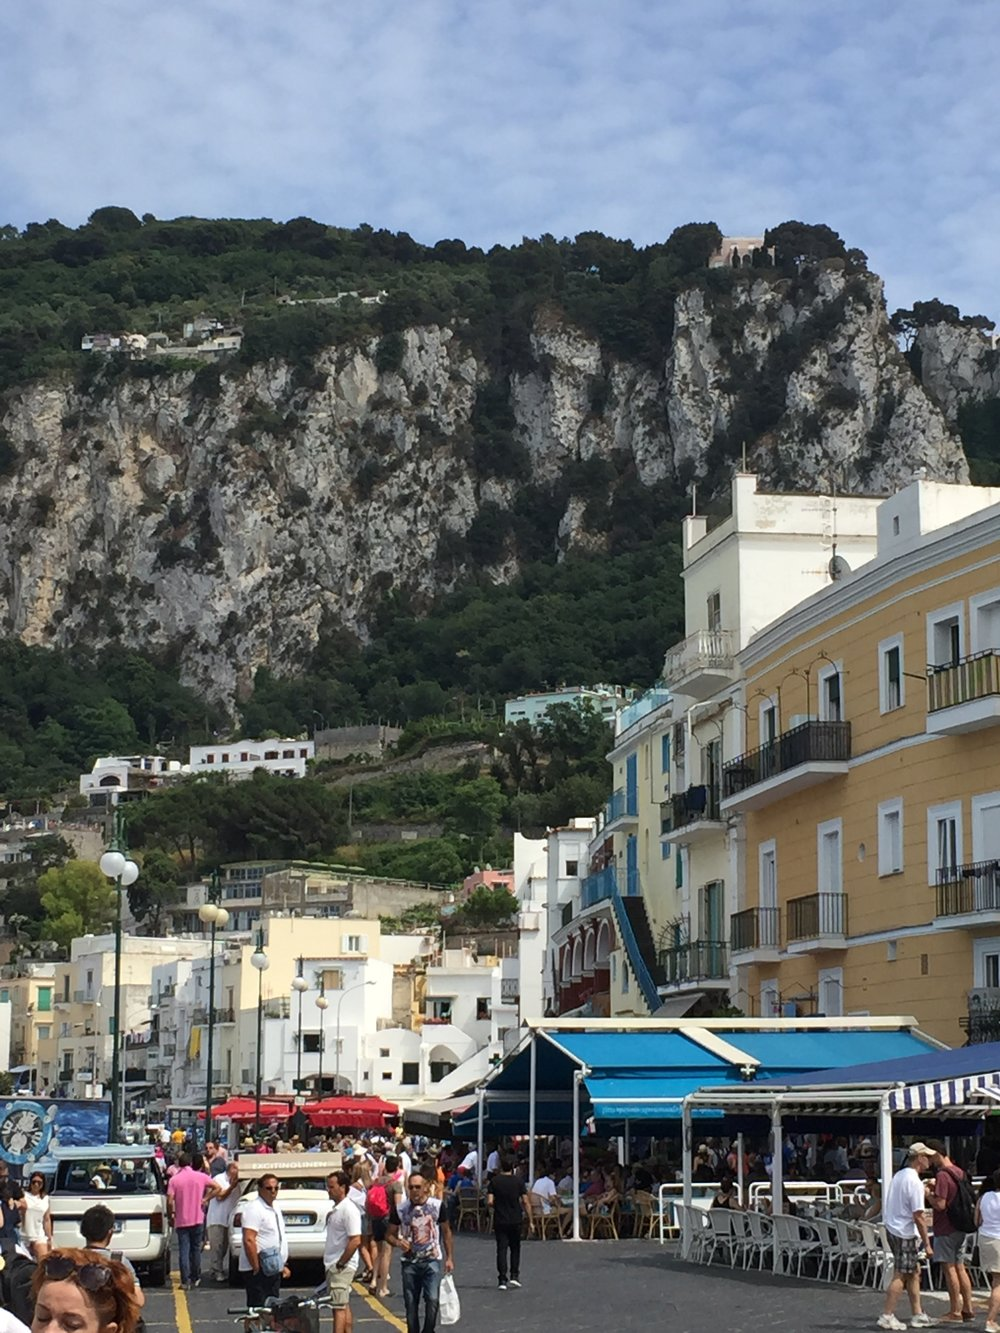 Capri, Italy Main City Square right off the boat